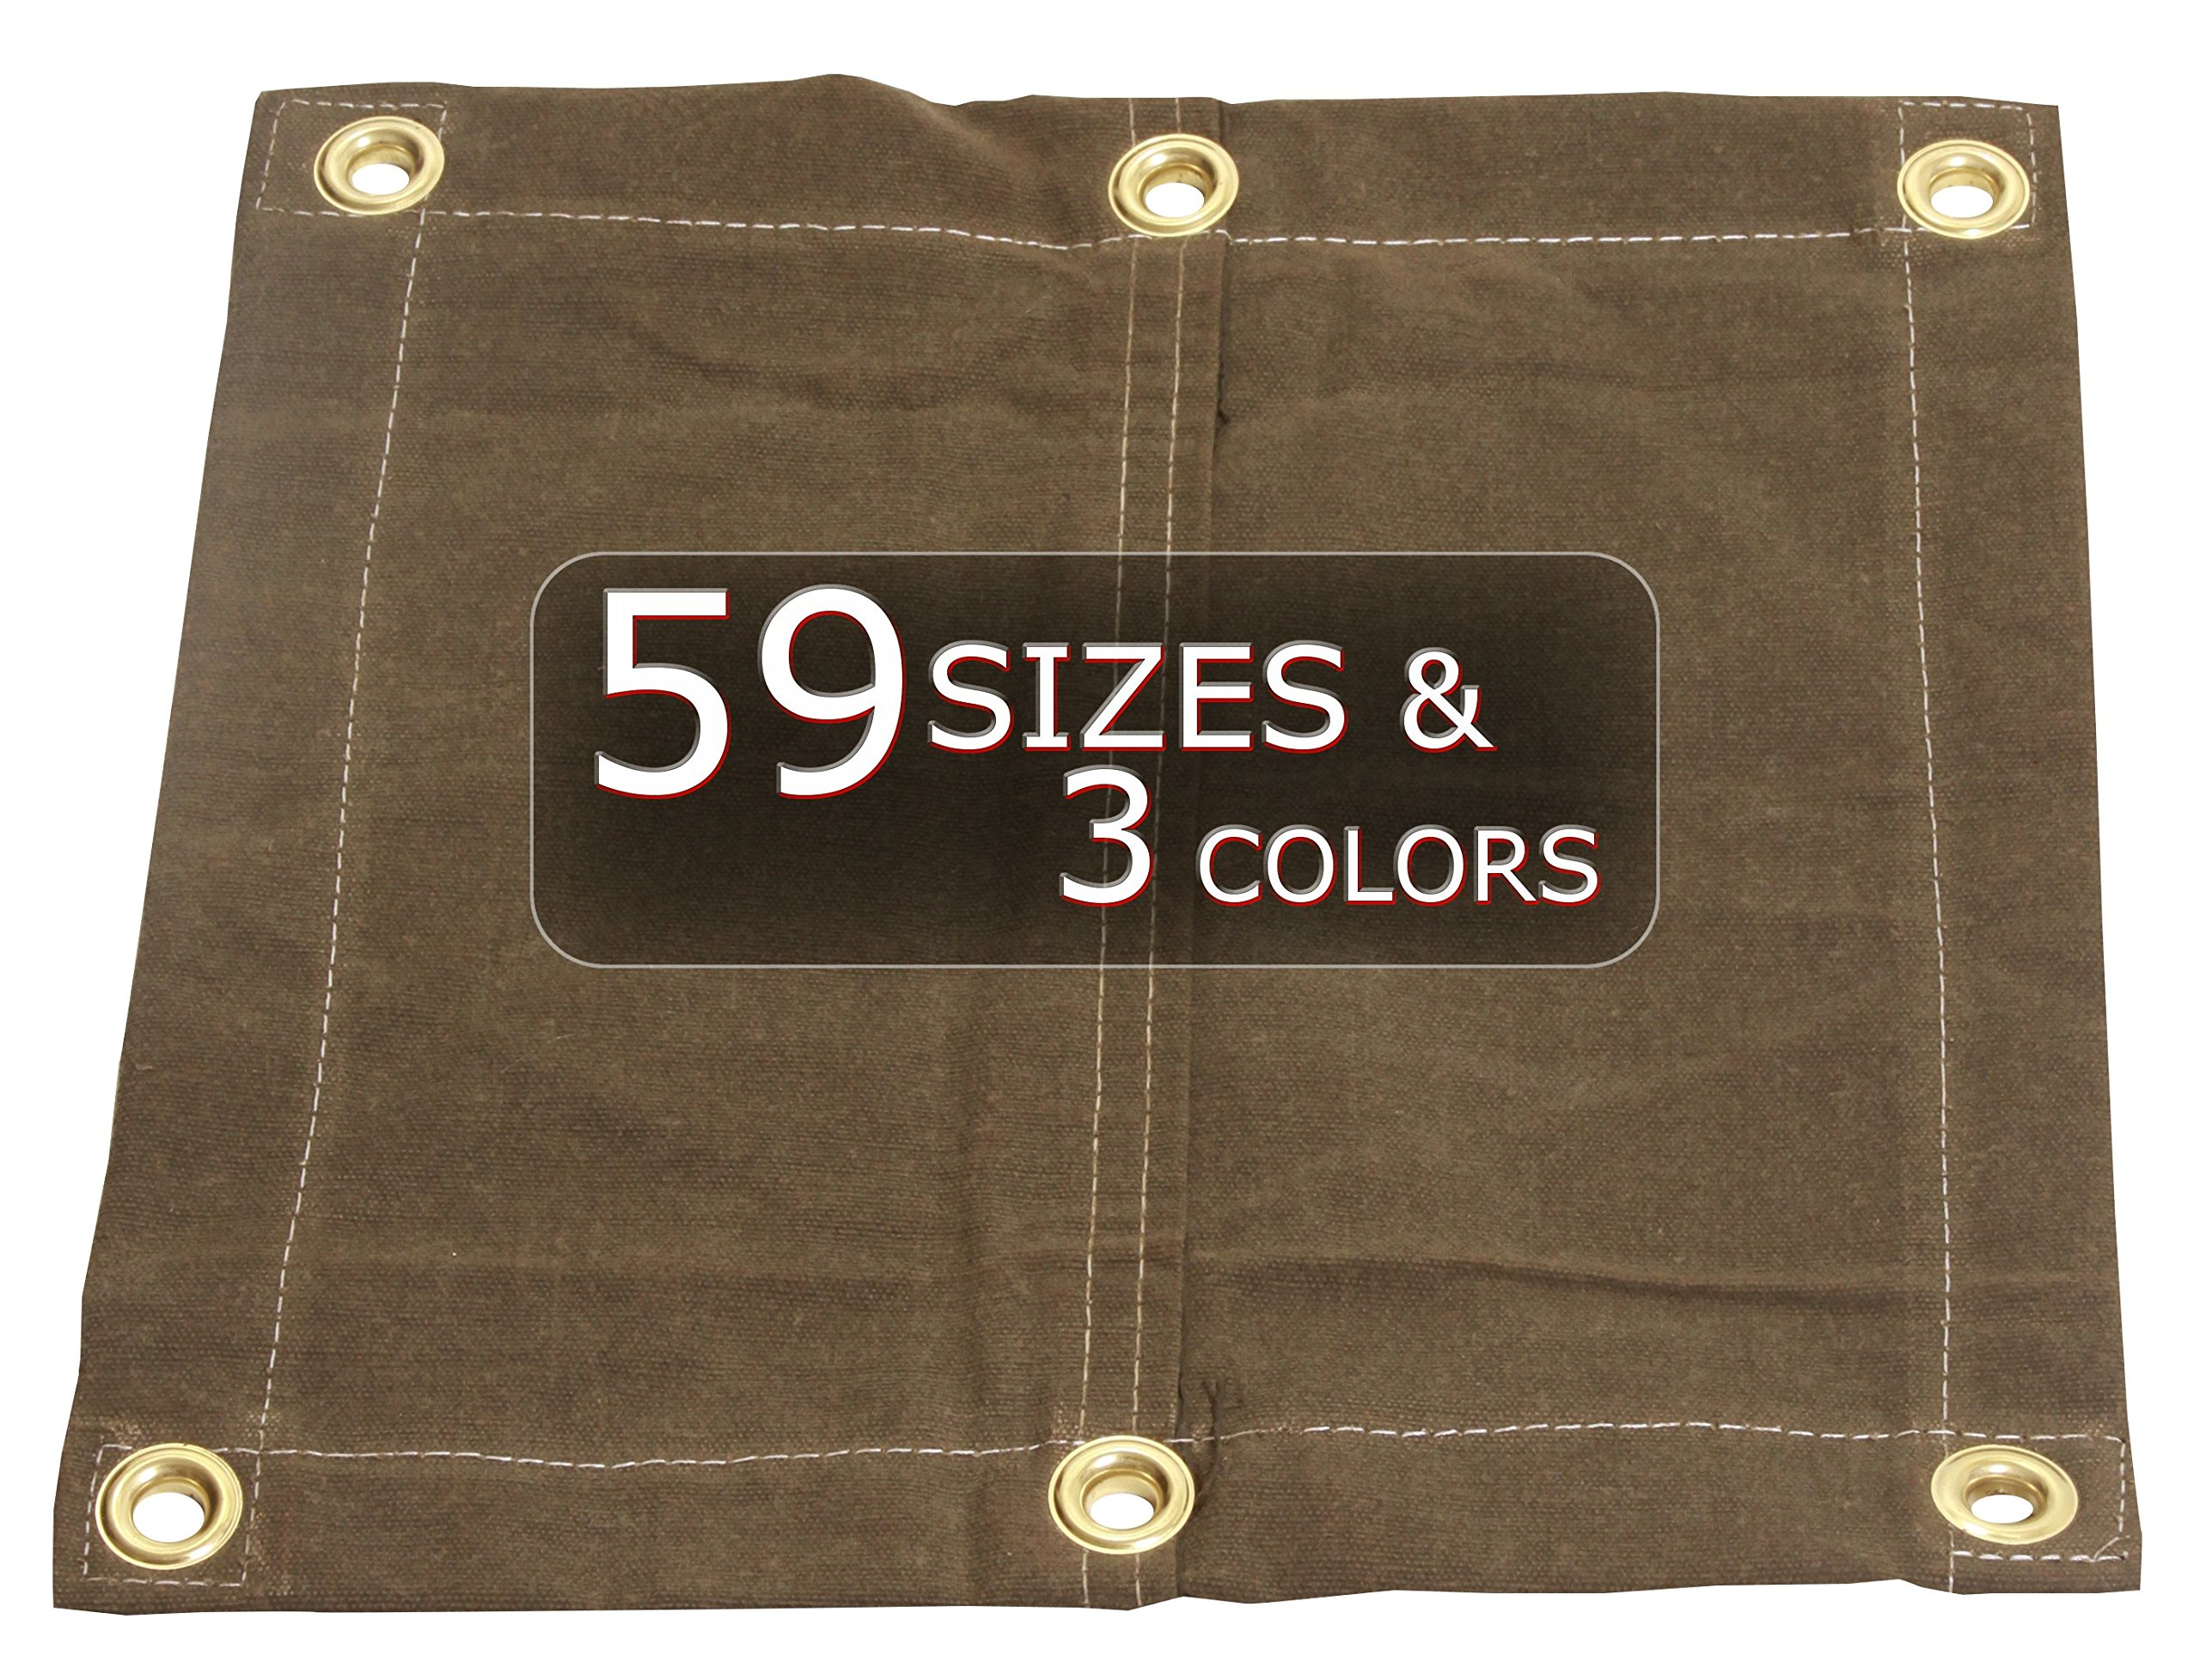 6x12 18oz Heavy Duty Canvas Tarp with Grommets - Tan- Water, Mold and Mildew Resistant by Tarp Nation